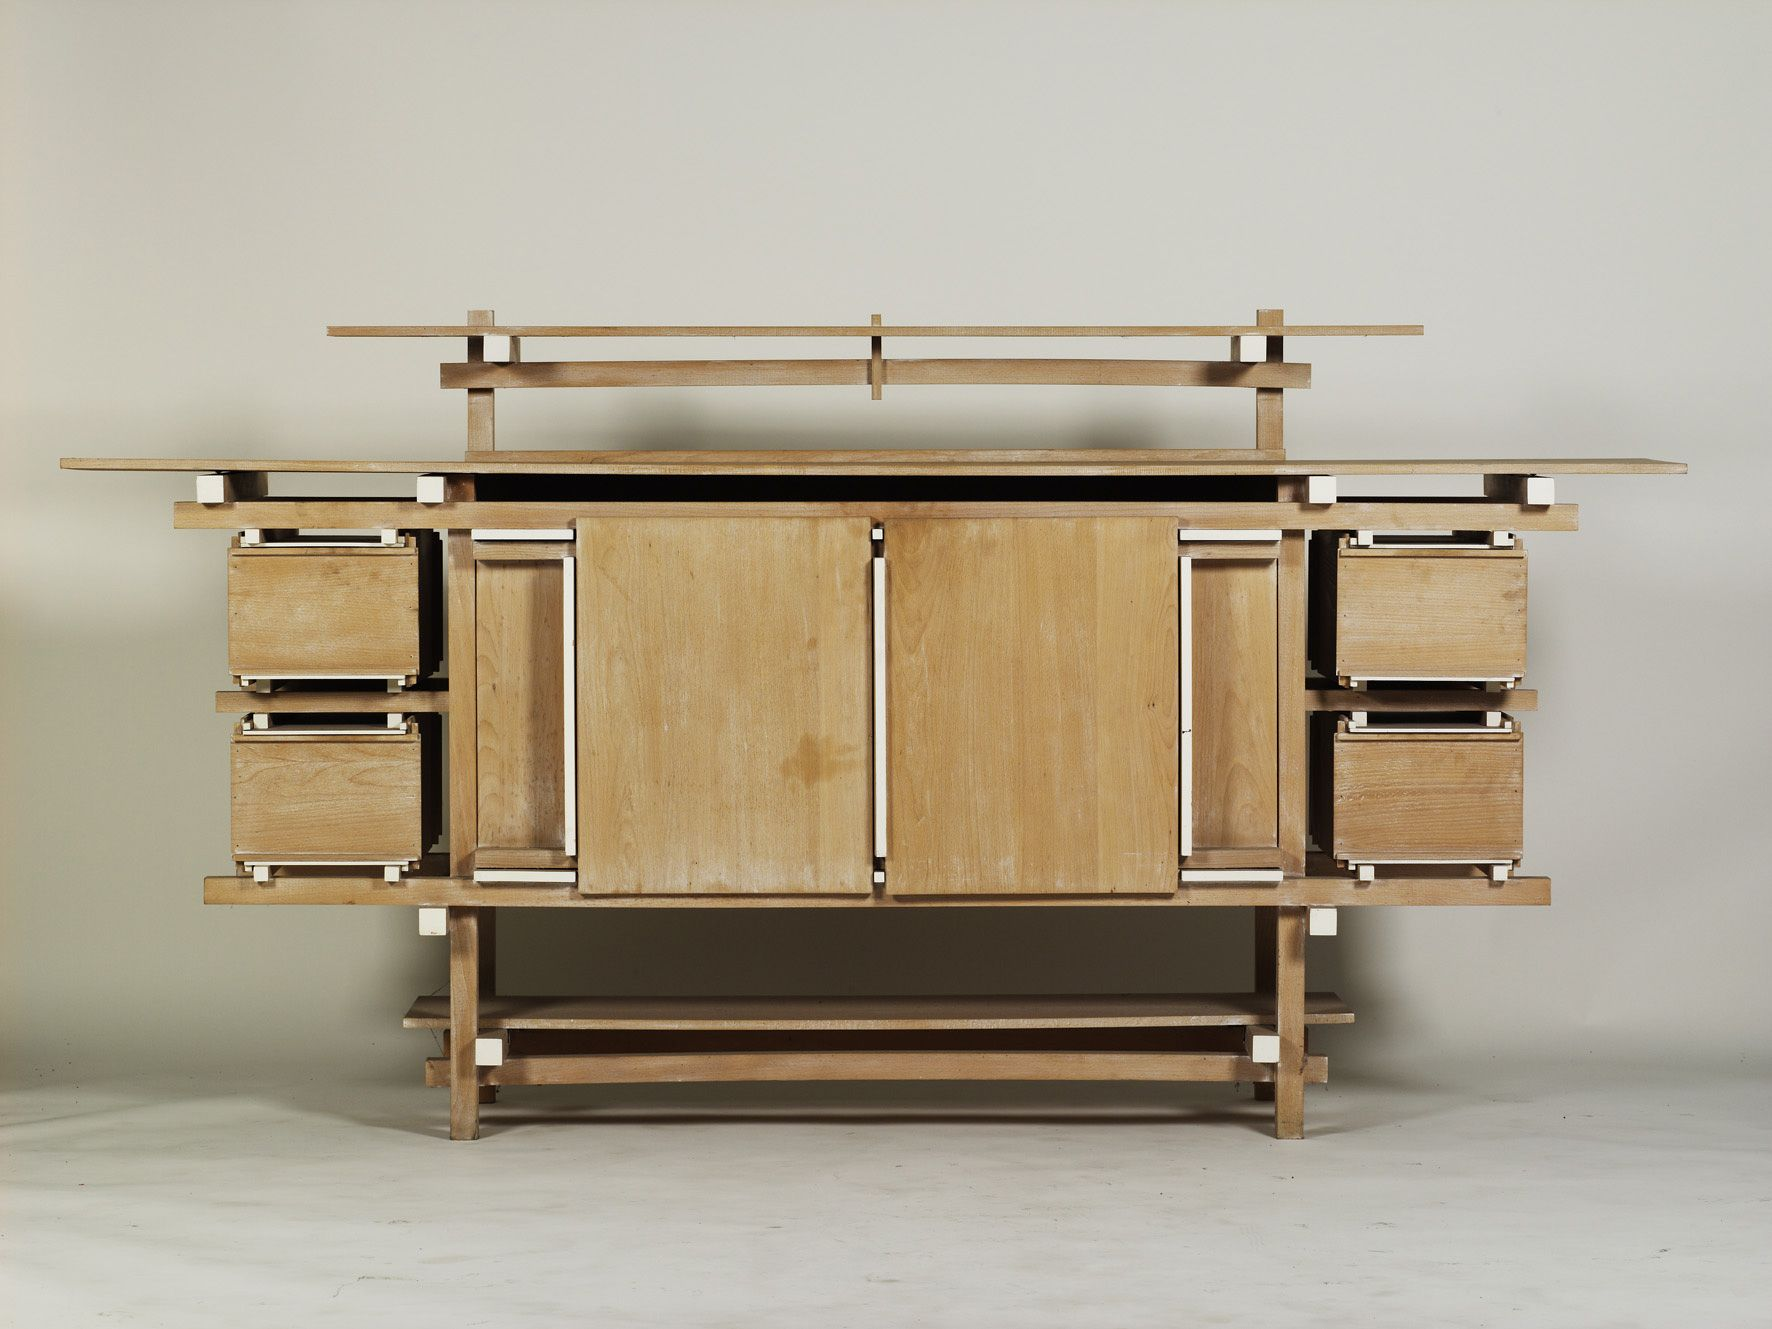 Gerrit rietveld furniture - A Beautiful Beech And Plywood Buffet Designed From Gerrit Rietveld In 1919 The Original